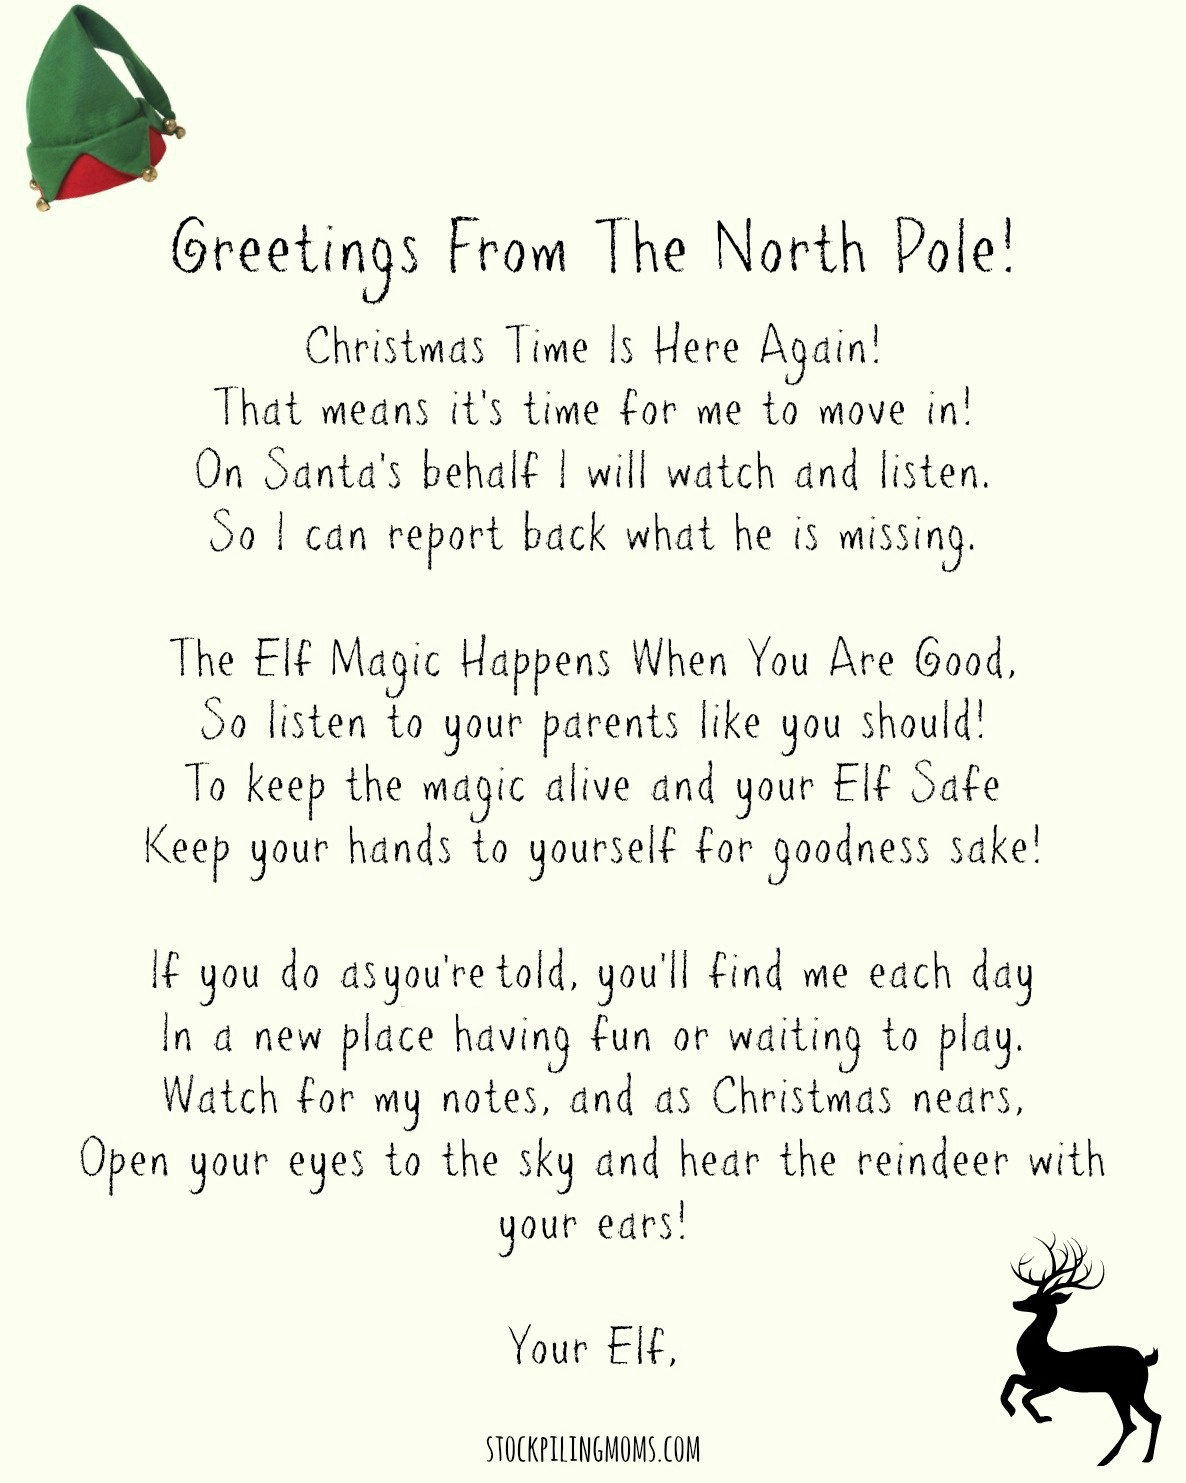 Elf On A Shelf Welcome Letter Printable - Free Printable Elf On The Shelf Letter